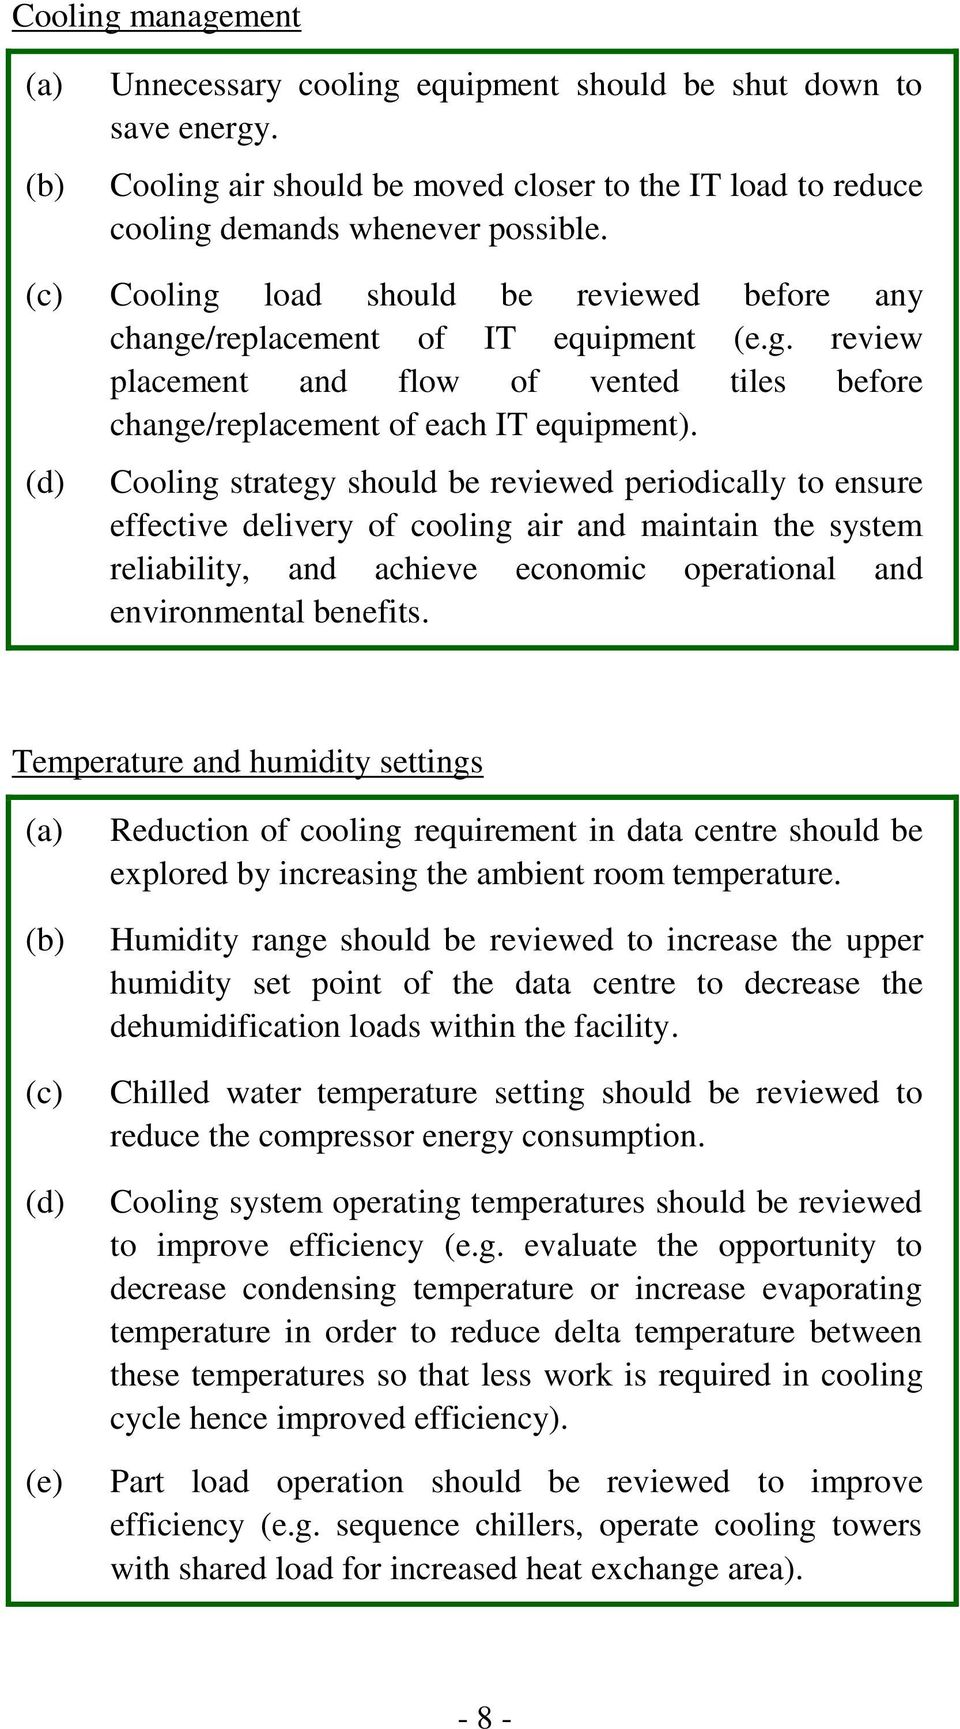 Cooling strategy should be reviewed periodically to ensure effective delivery of cooling air and maintain the system reliability, and achieve economic operational and environmental benefits.